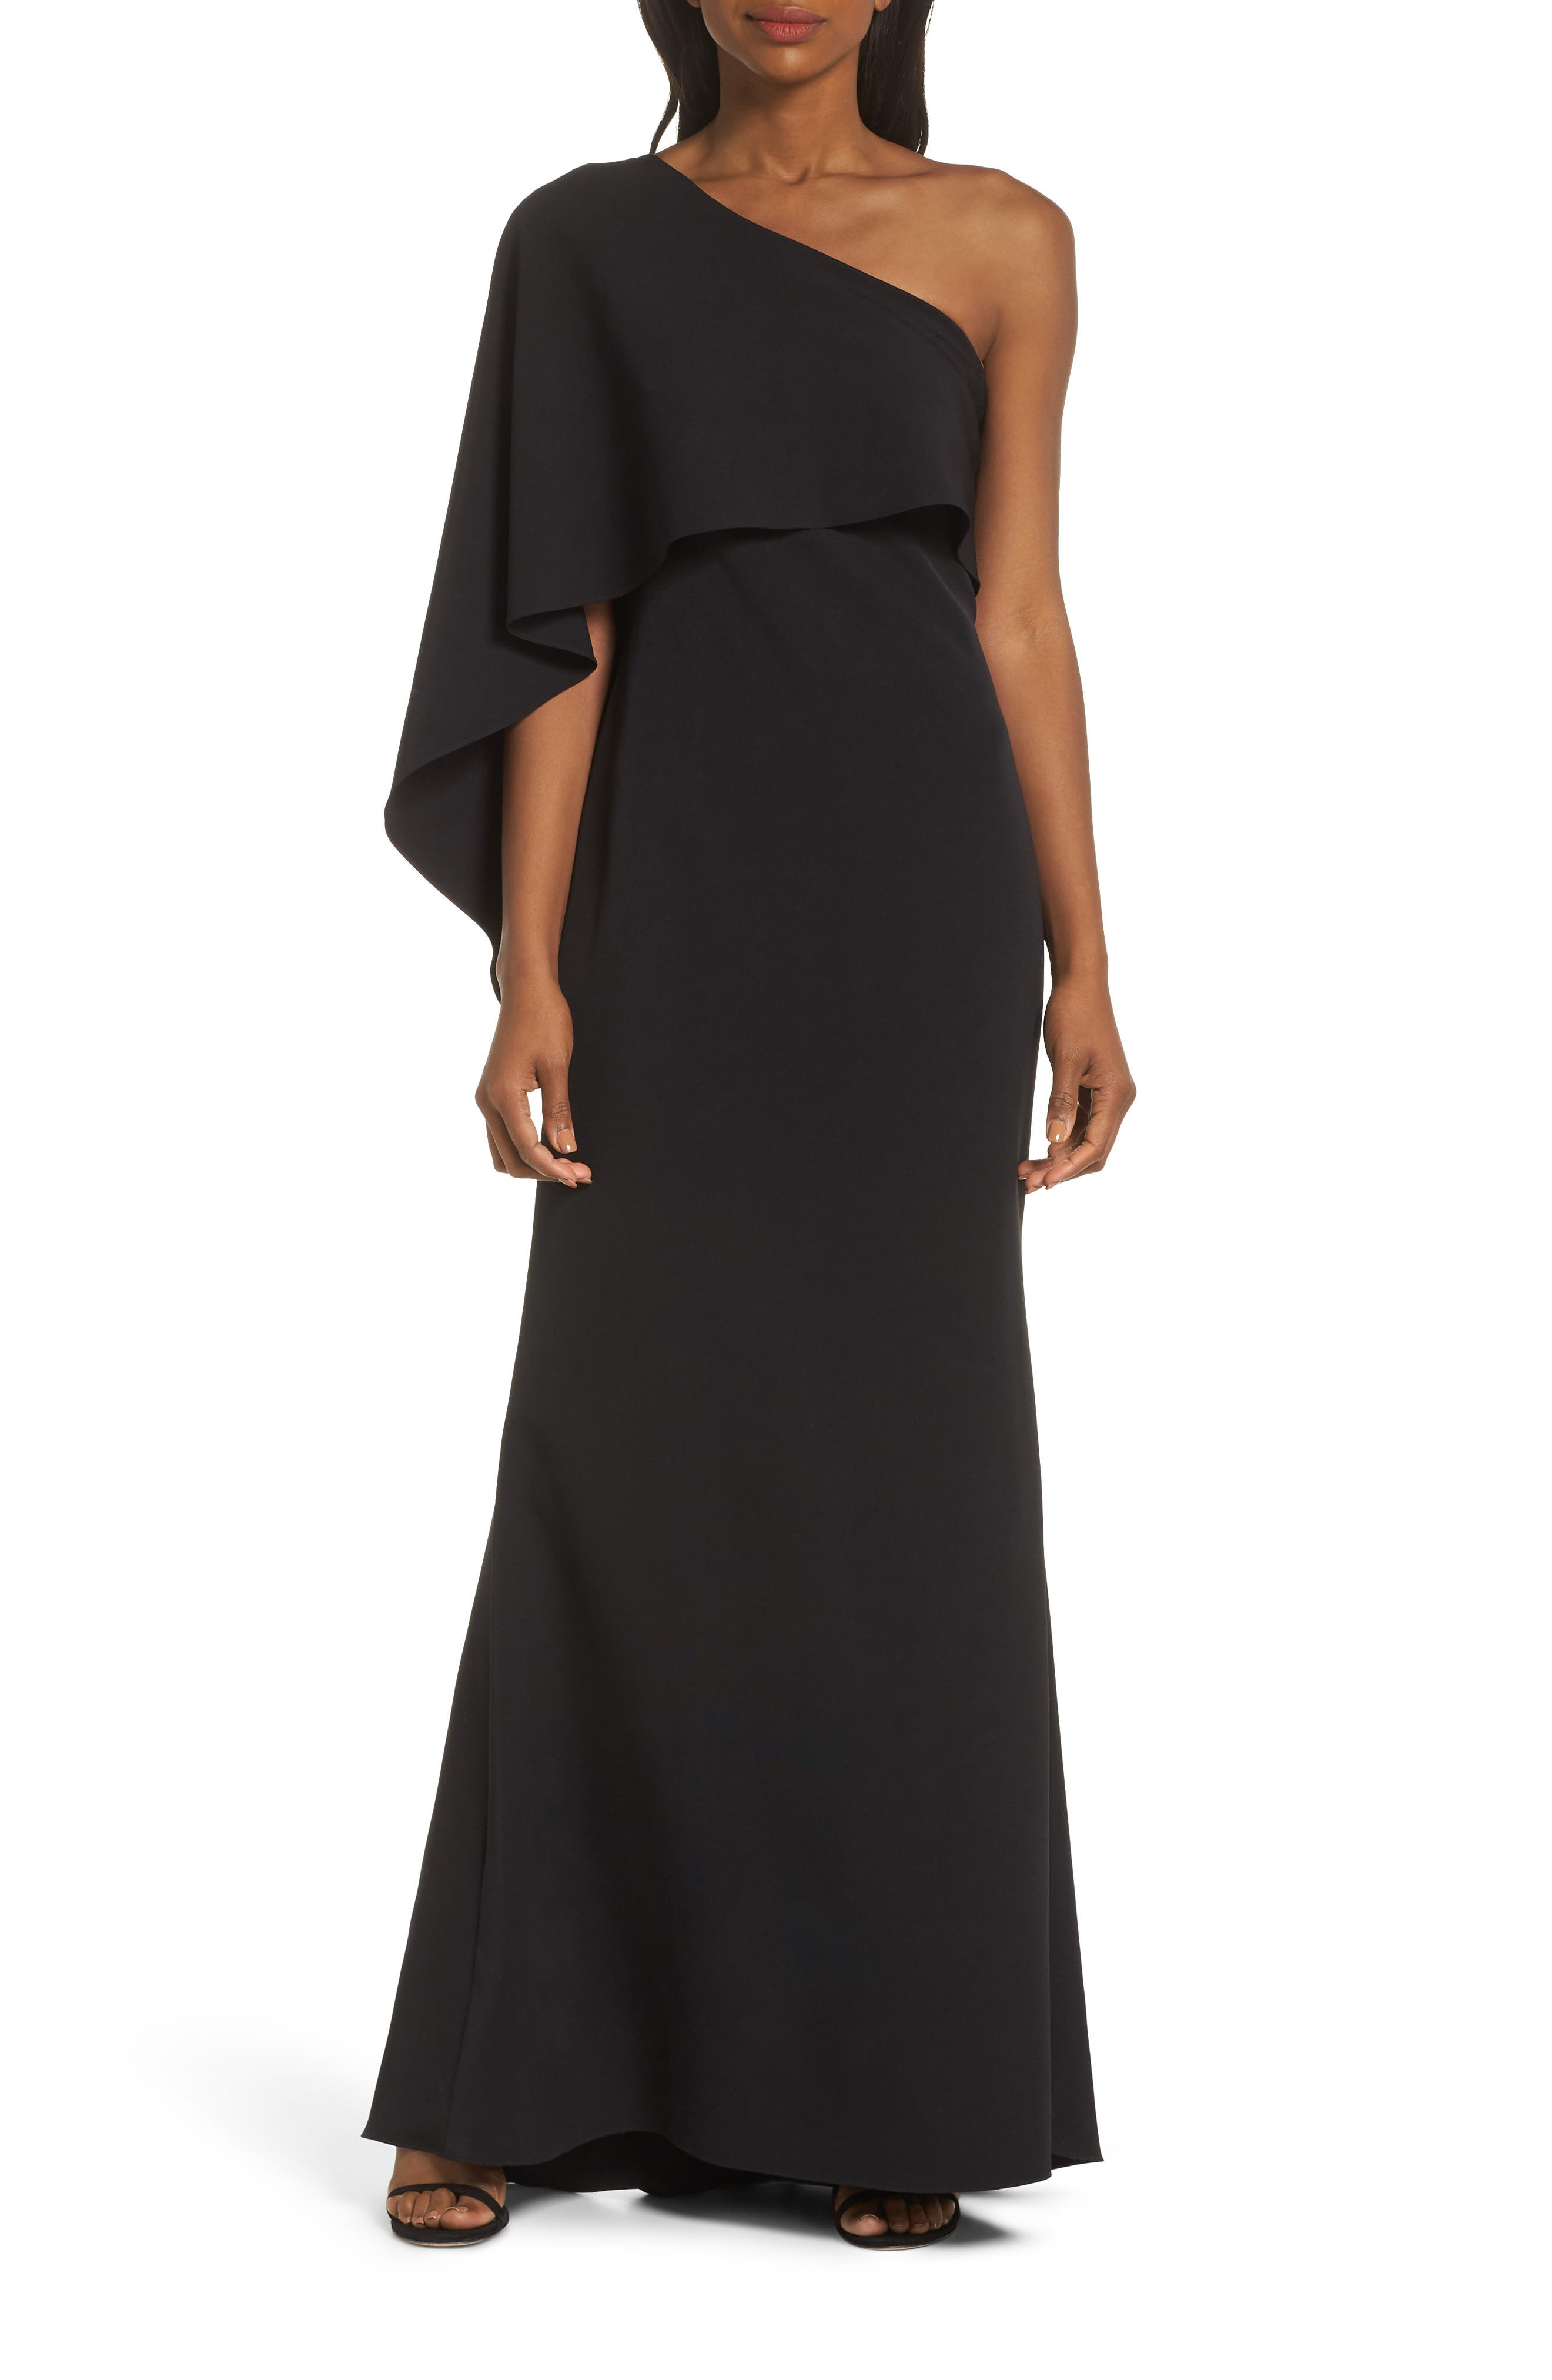 Petite Vince Camuto One-Shoulder Cape Evening Dress, Black